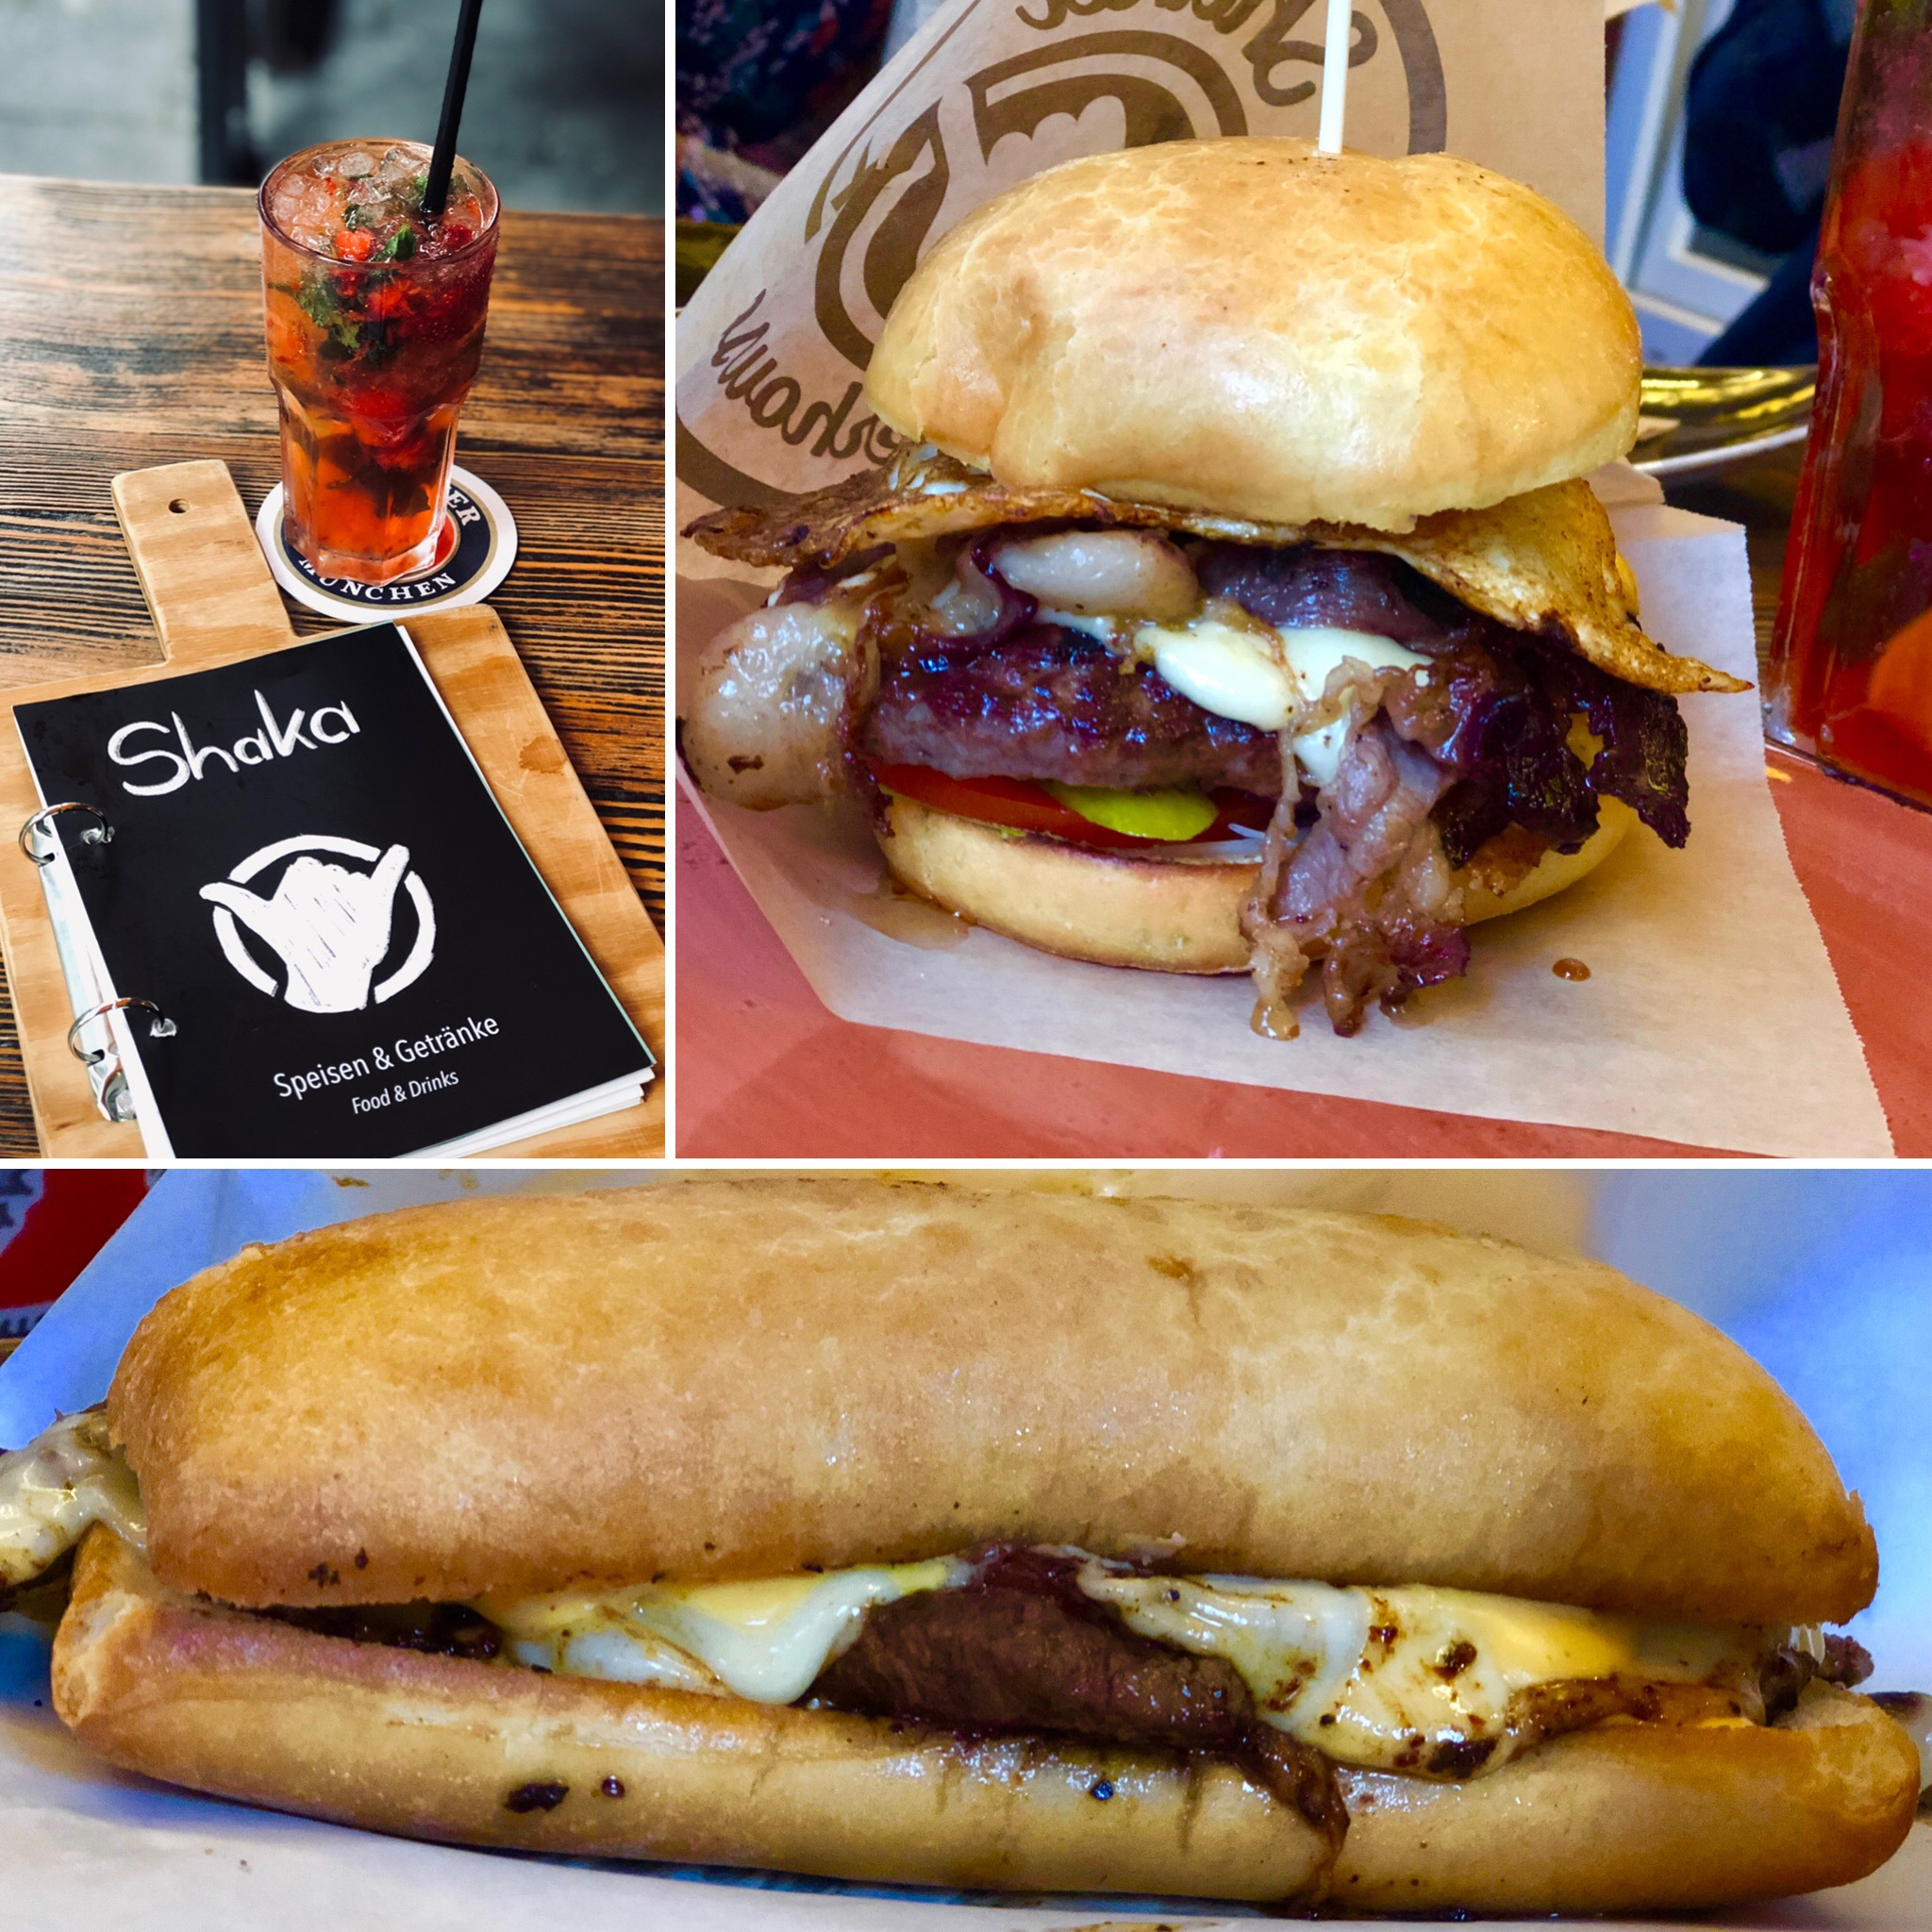 Philly cheese steak sandwich, and bacon cheese burger at Shaka in Garmisch Germany